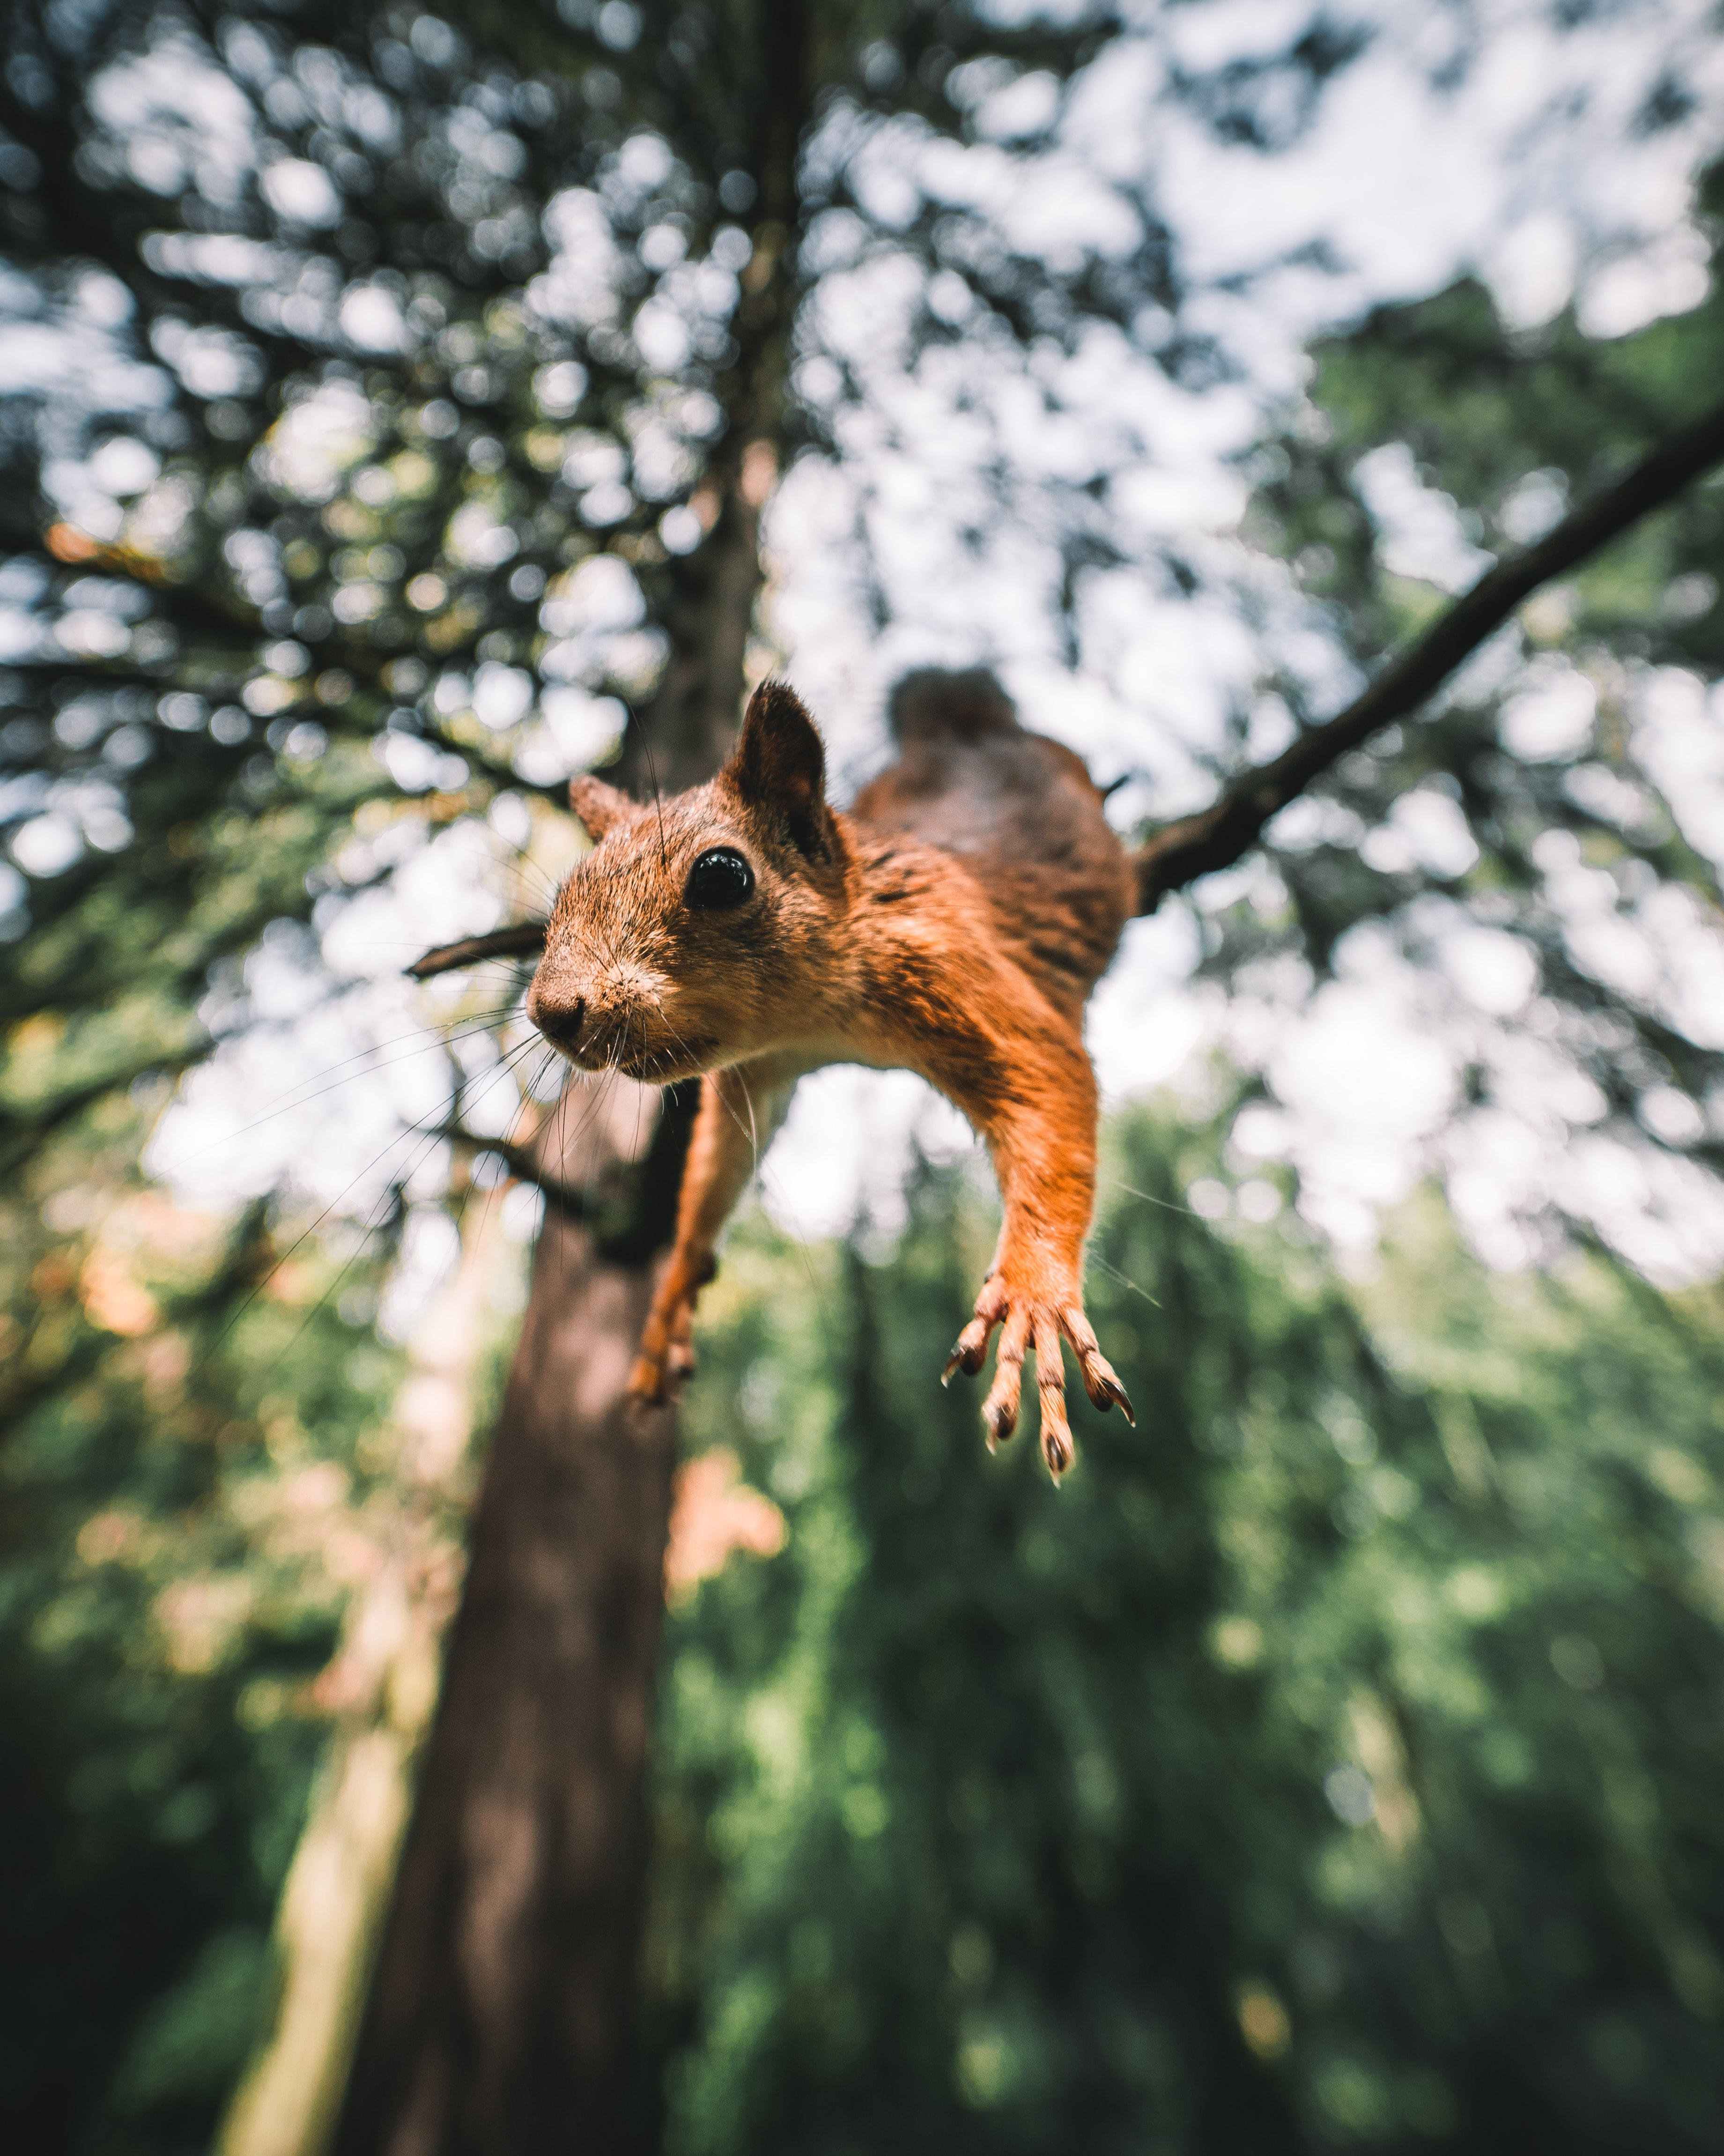 89836 download wallpaper Animals, Squirrel, Rodent, Funny, Paws, Bounce, Jump screensavers and pictures for free